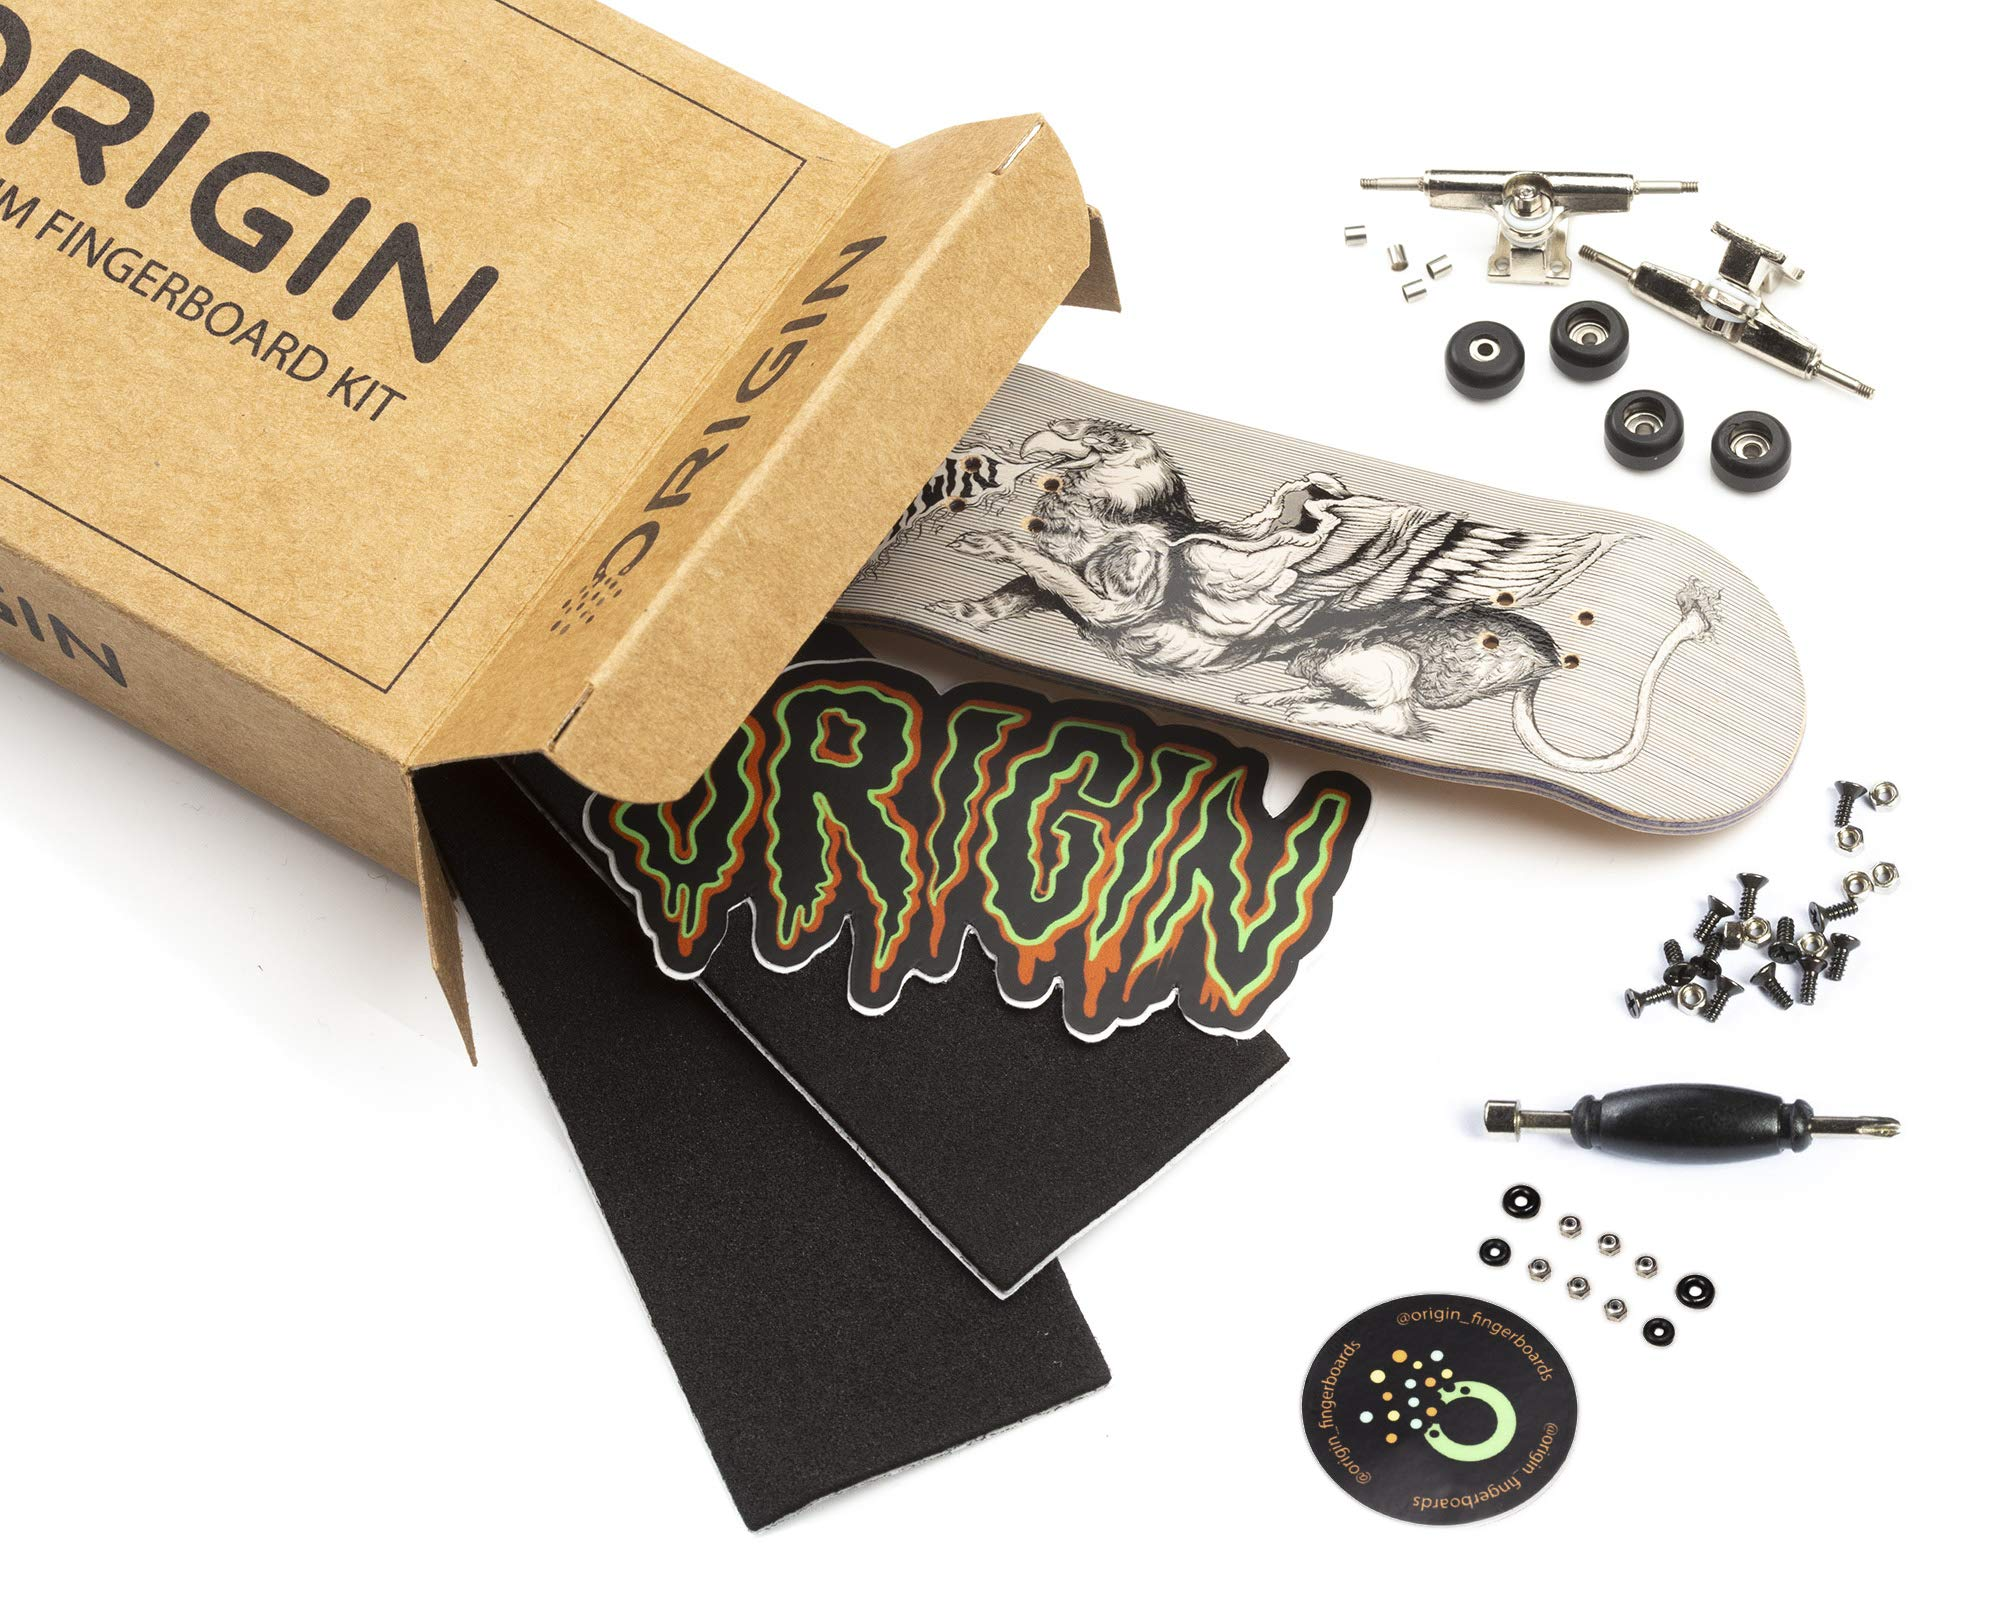 Origin Fingerboards Premium Graphic Fingerboard Kit - 32mm 5-Ply Canadian Maple Skateboard Toy with CNC Bearing Wheels (Griffin) by Origin Fingerboards